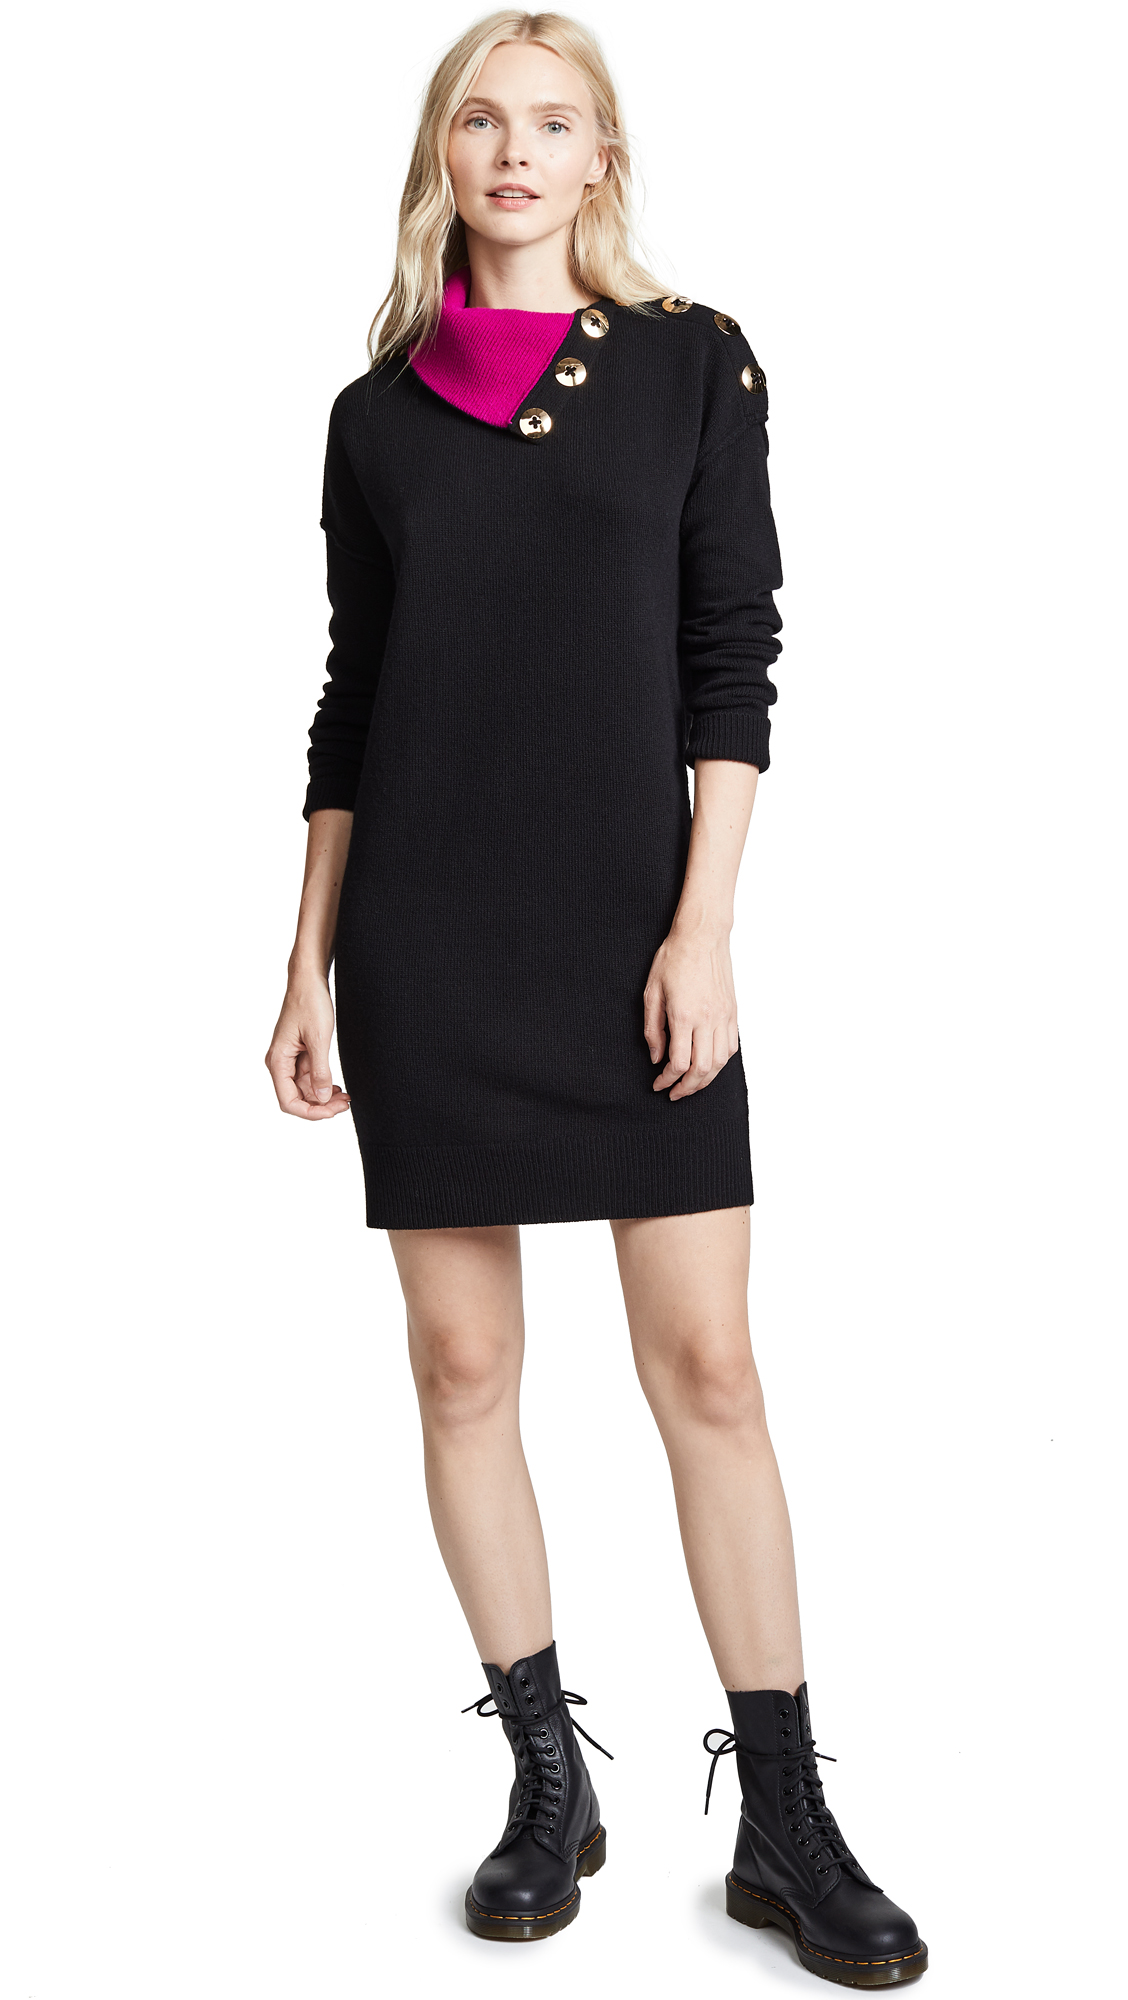 Marc Jacobs Sweater Dress In Black